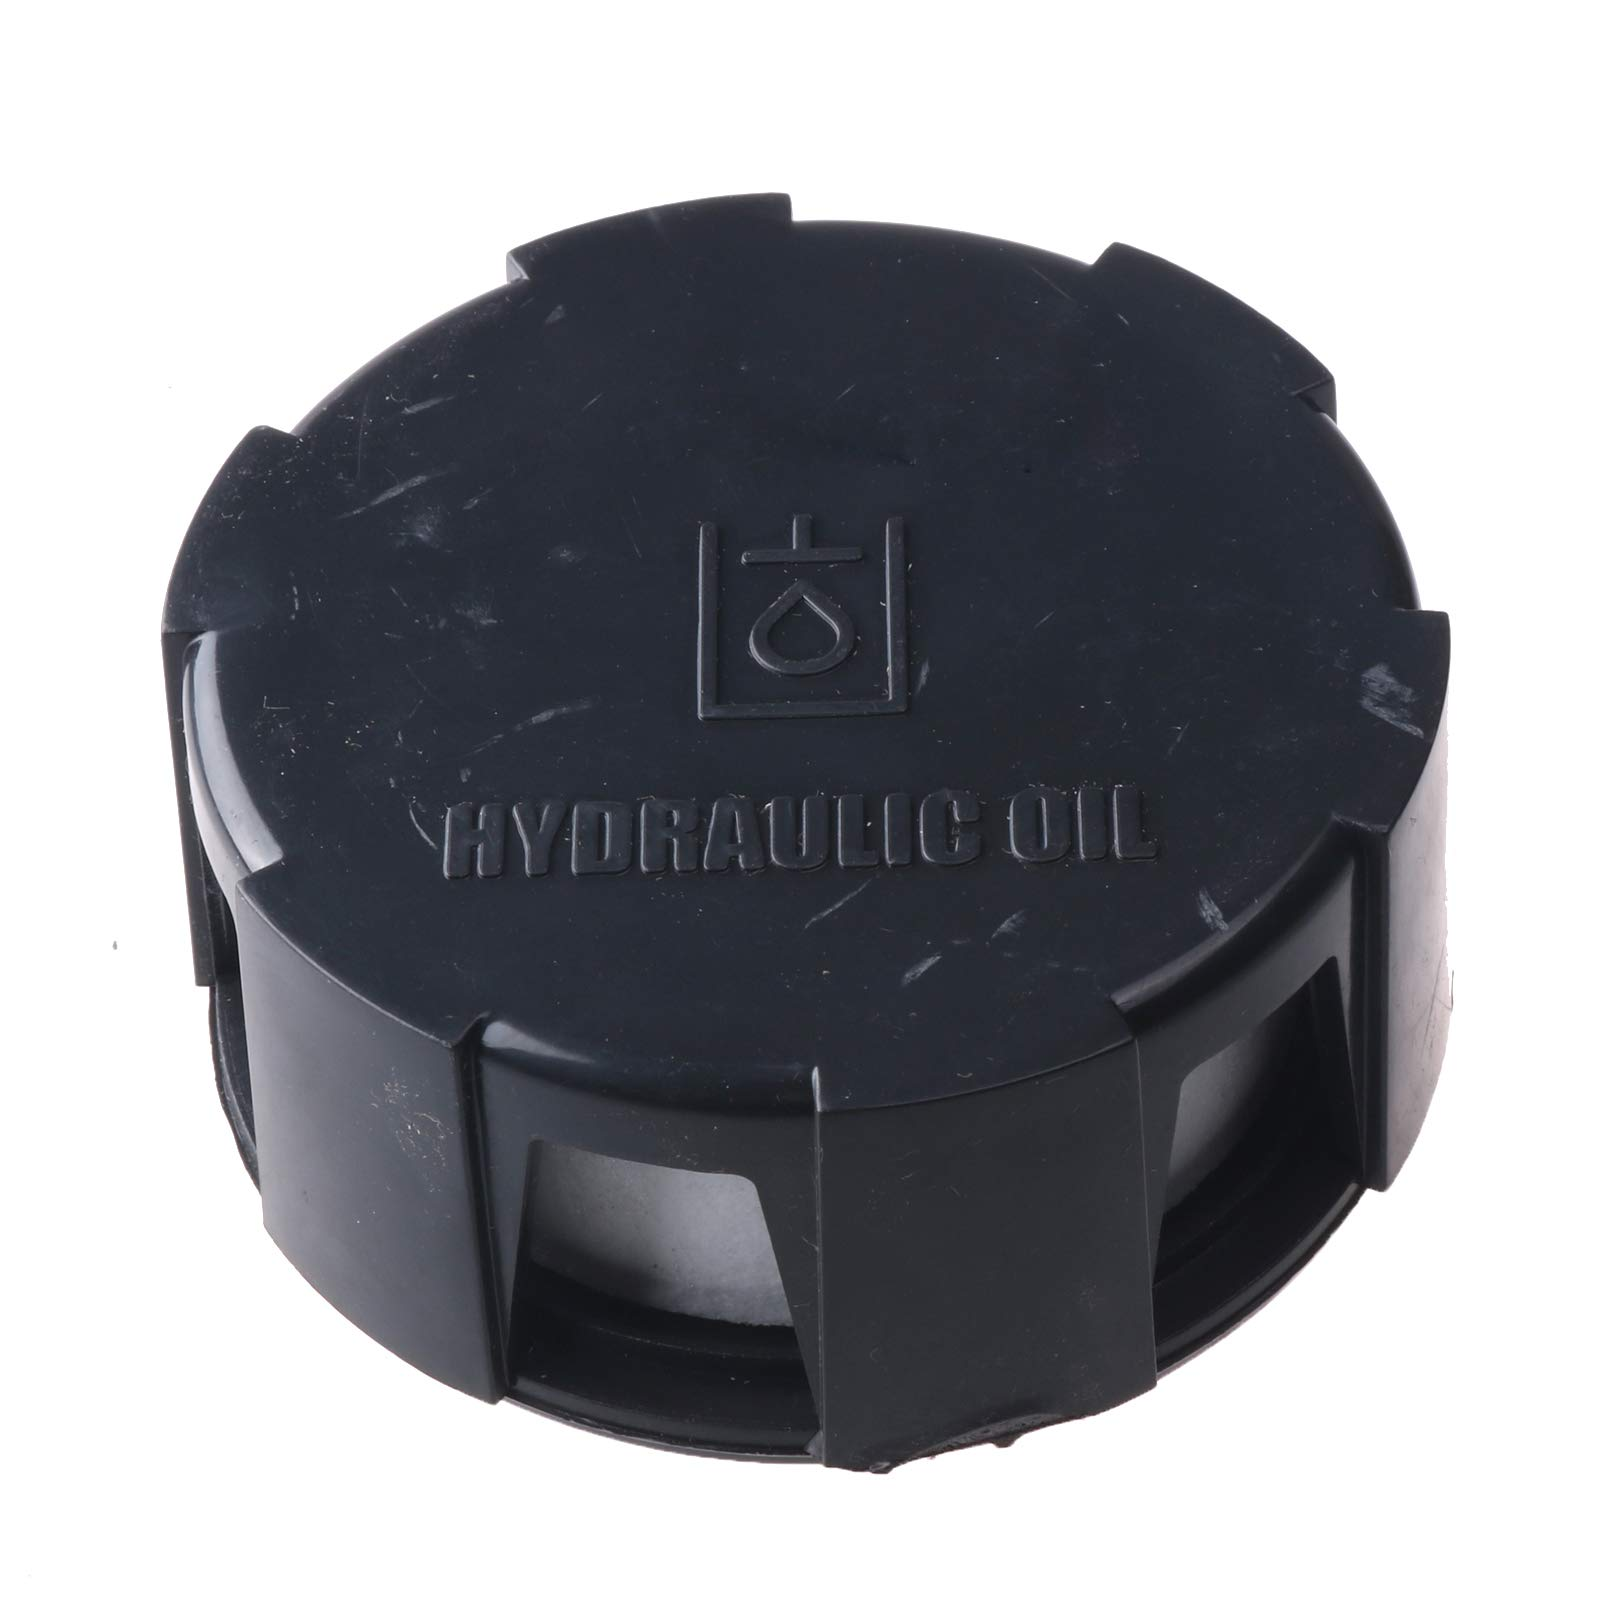 Friday Part Hydraulic Oil Cap 6577785 for Bobcat 313 520 530 533 540 543 630 631 632 641 642 643 730 731 732 741 742 743 751 753 763 843 853 A220 2000 1213 S130